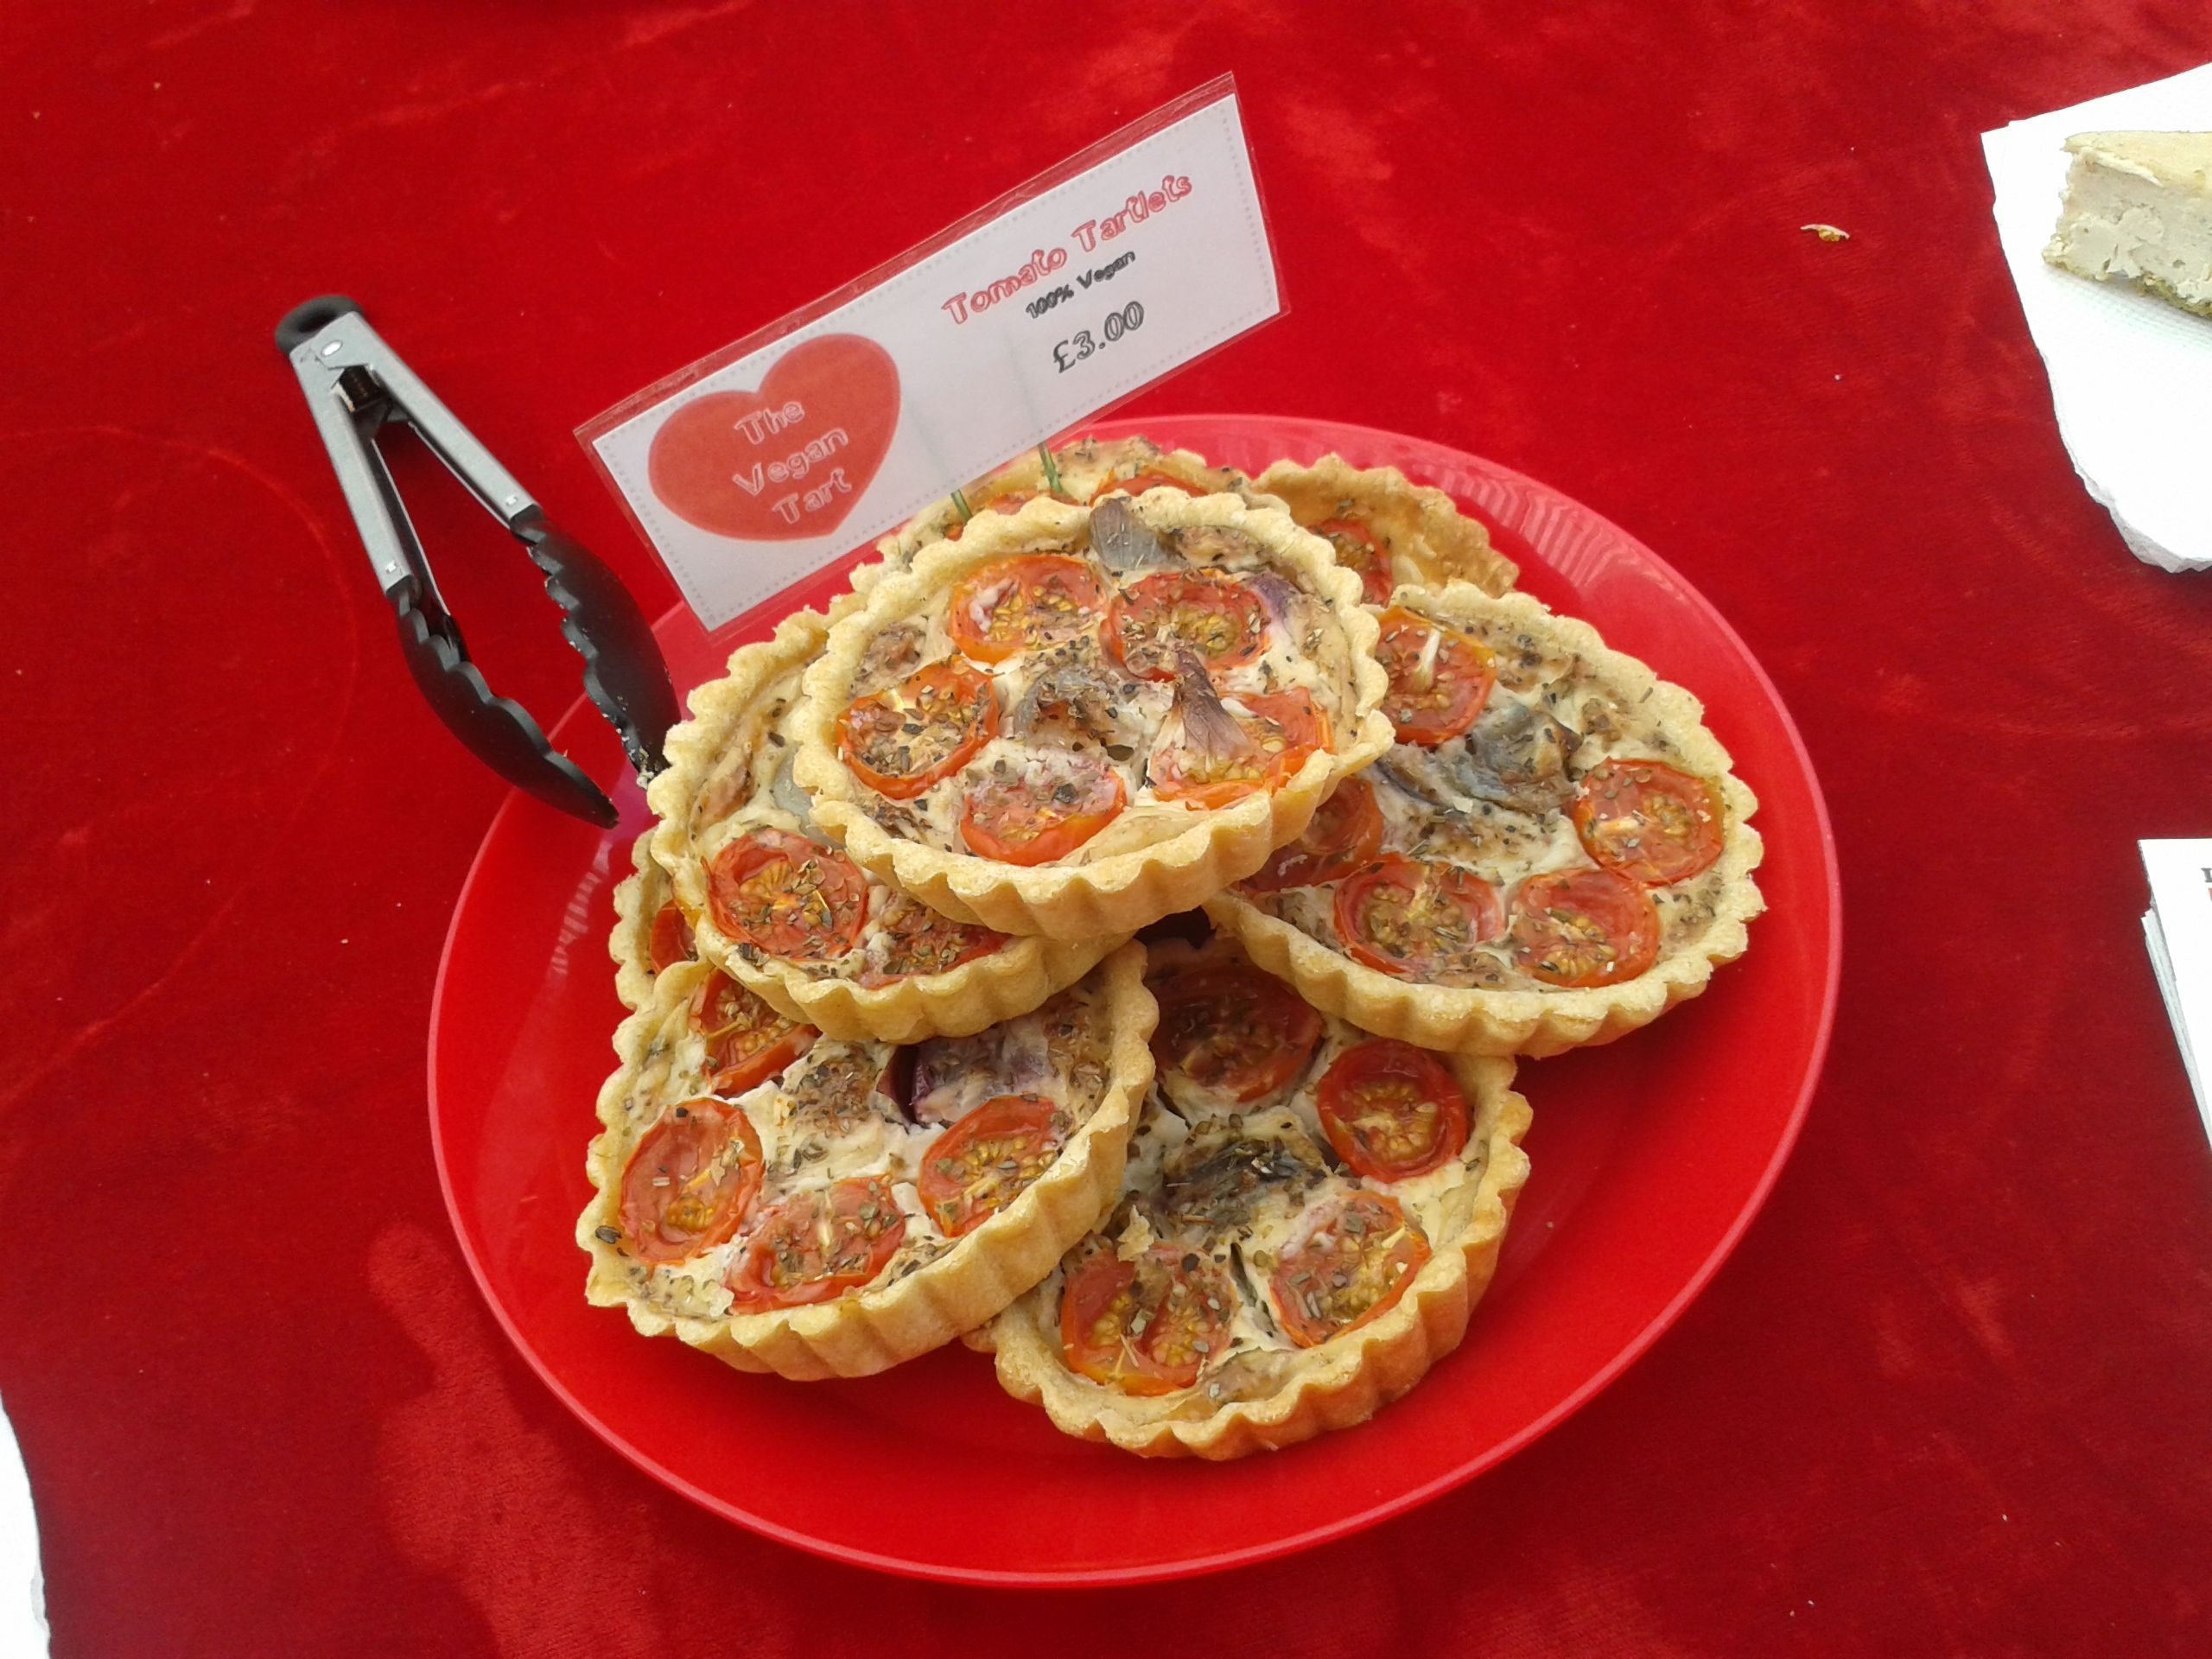 https://i2.wp.com/fatgayvegan.com/wp-content/uploads/2013/08/tomato-tartlets.jpg?fit=2560%2C1920&ssl=1